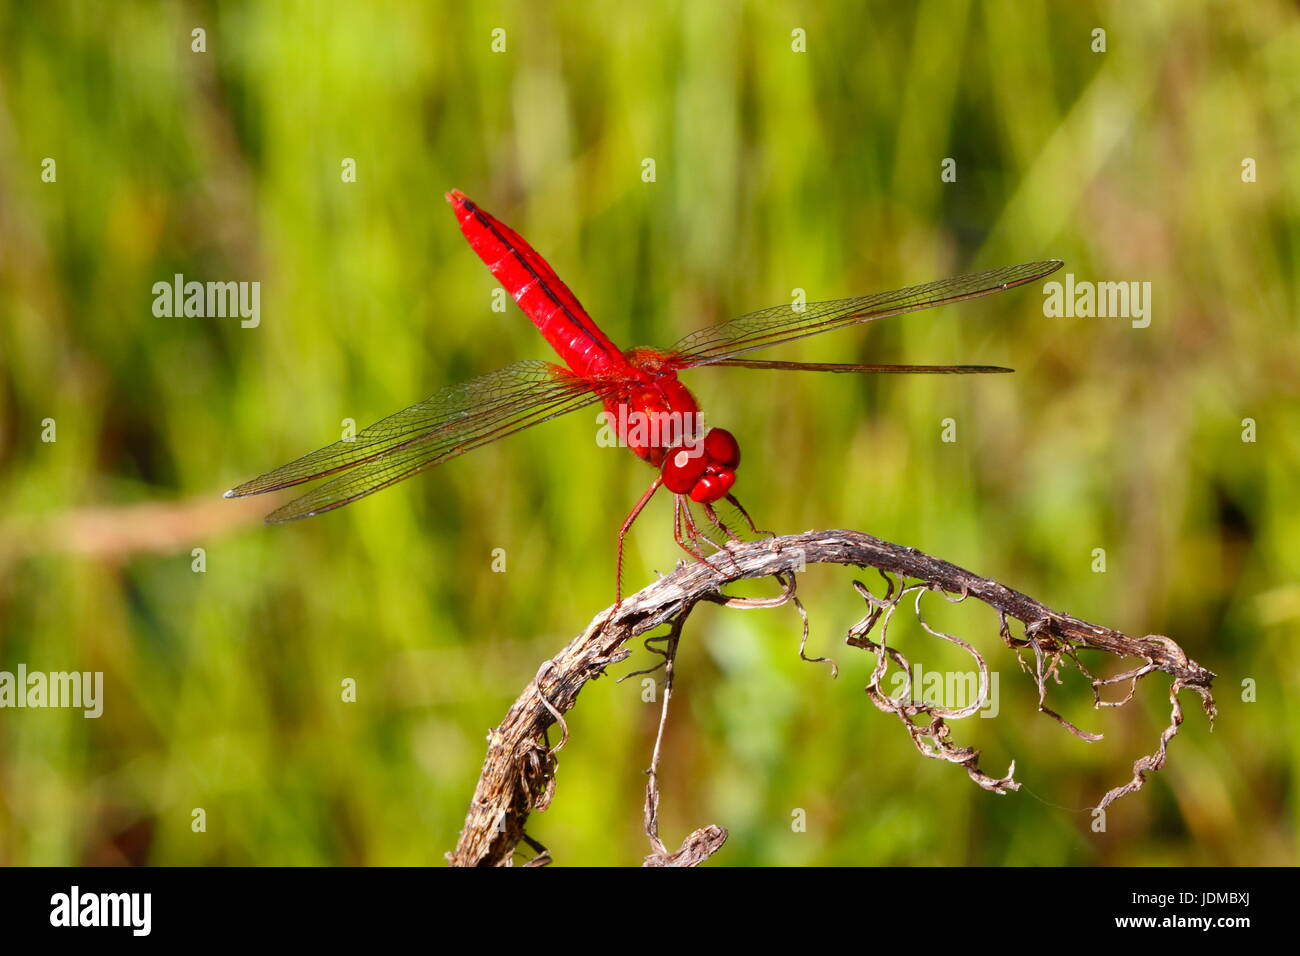 A scarlet skimmer, Crocothemis servilia, at rest on a twig. - Stock Image